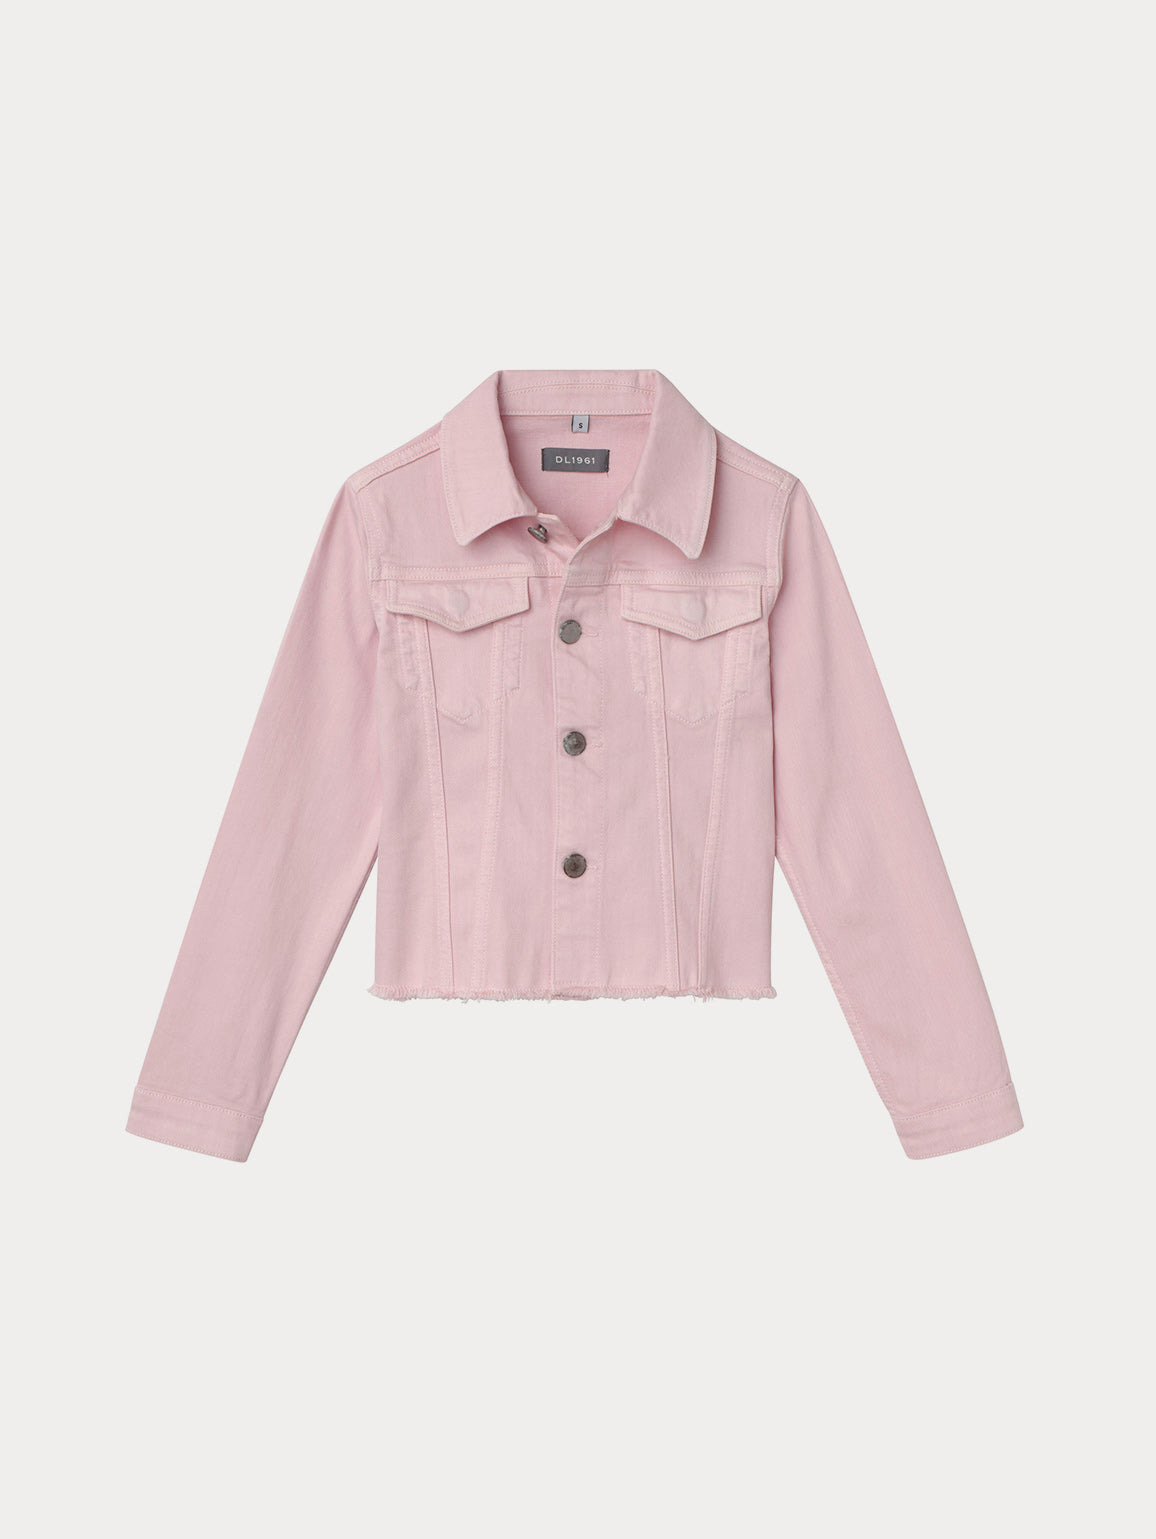 Kids Jacket - Manning Jacket | Country Club - DL1961